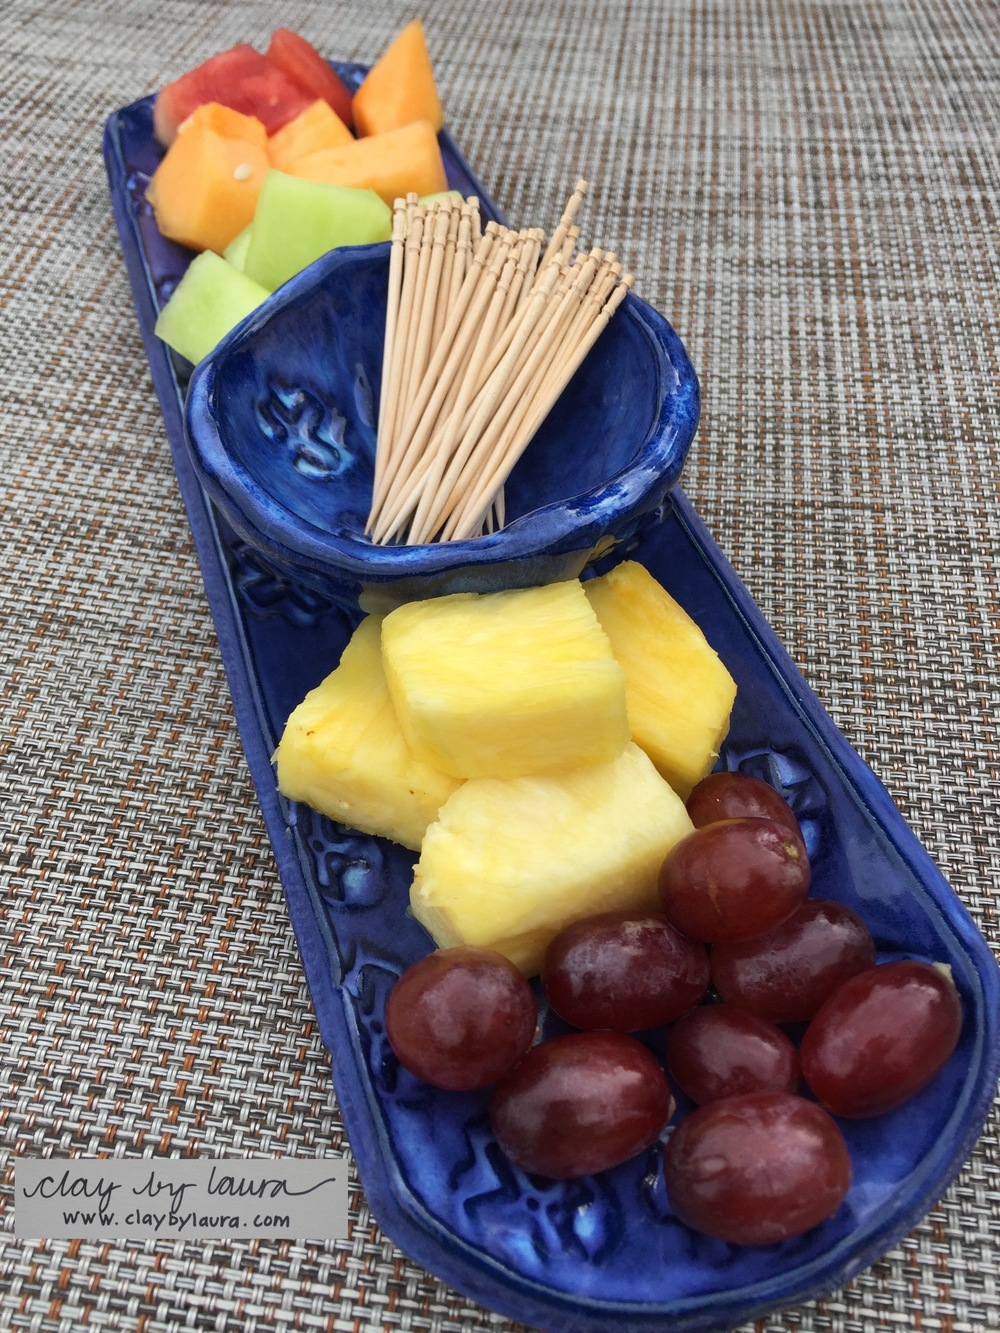 This Small Tray-n-Bowl set is perfect for serving sushi, fresh fruit or small bagels and your favorite spread.